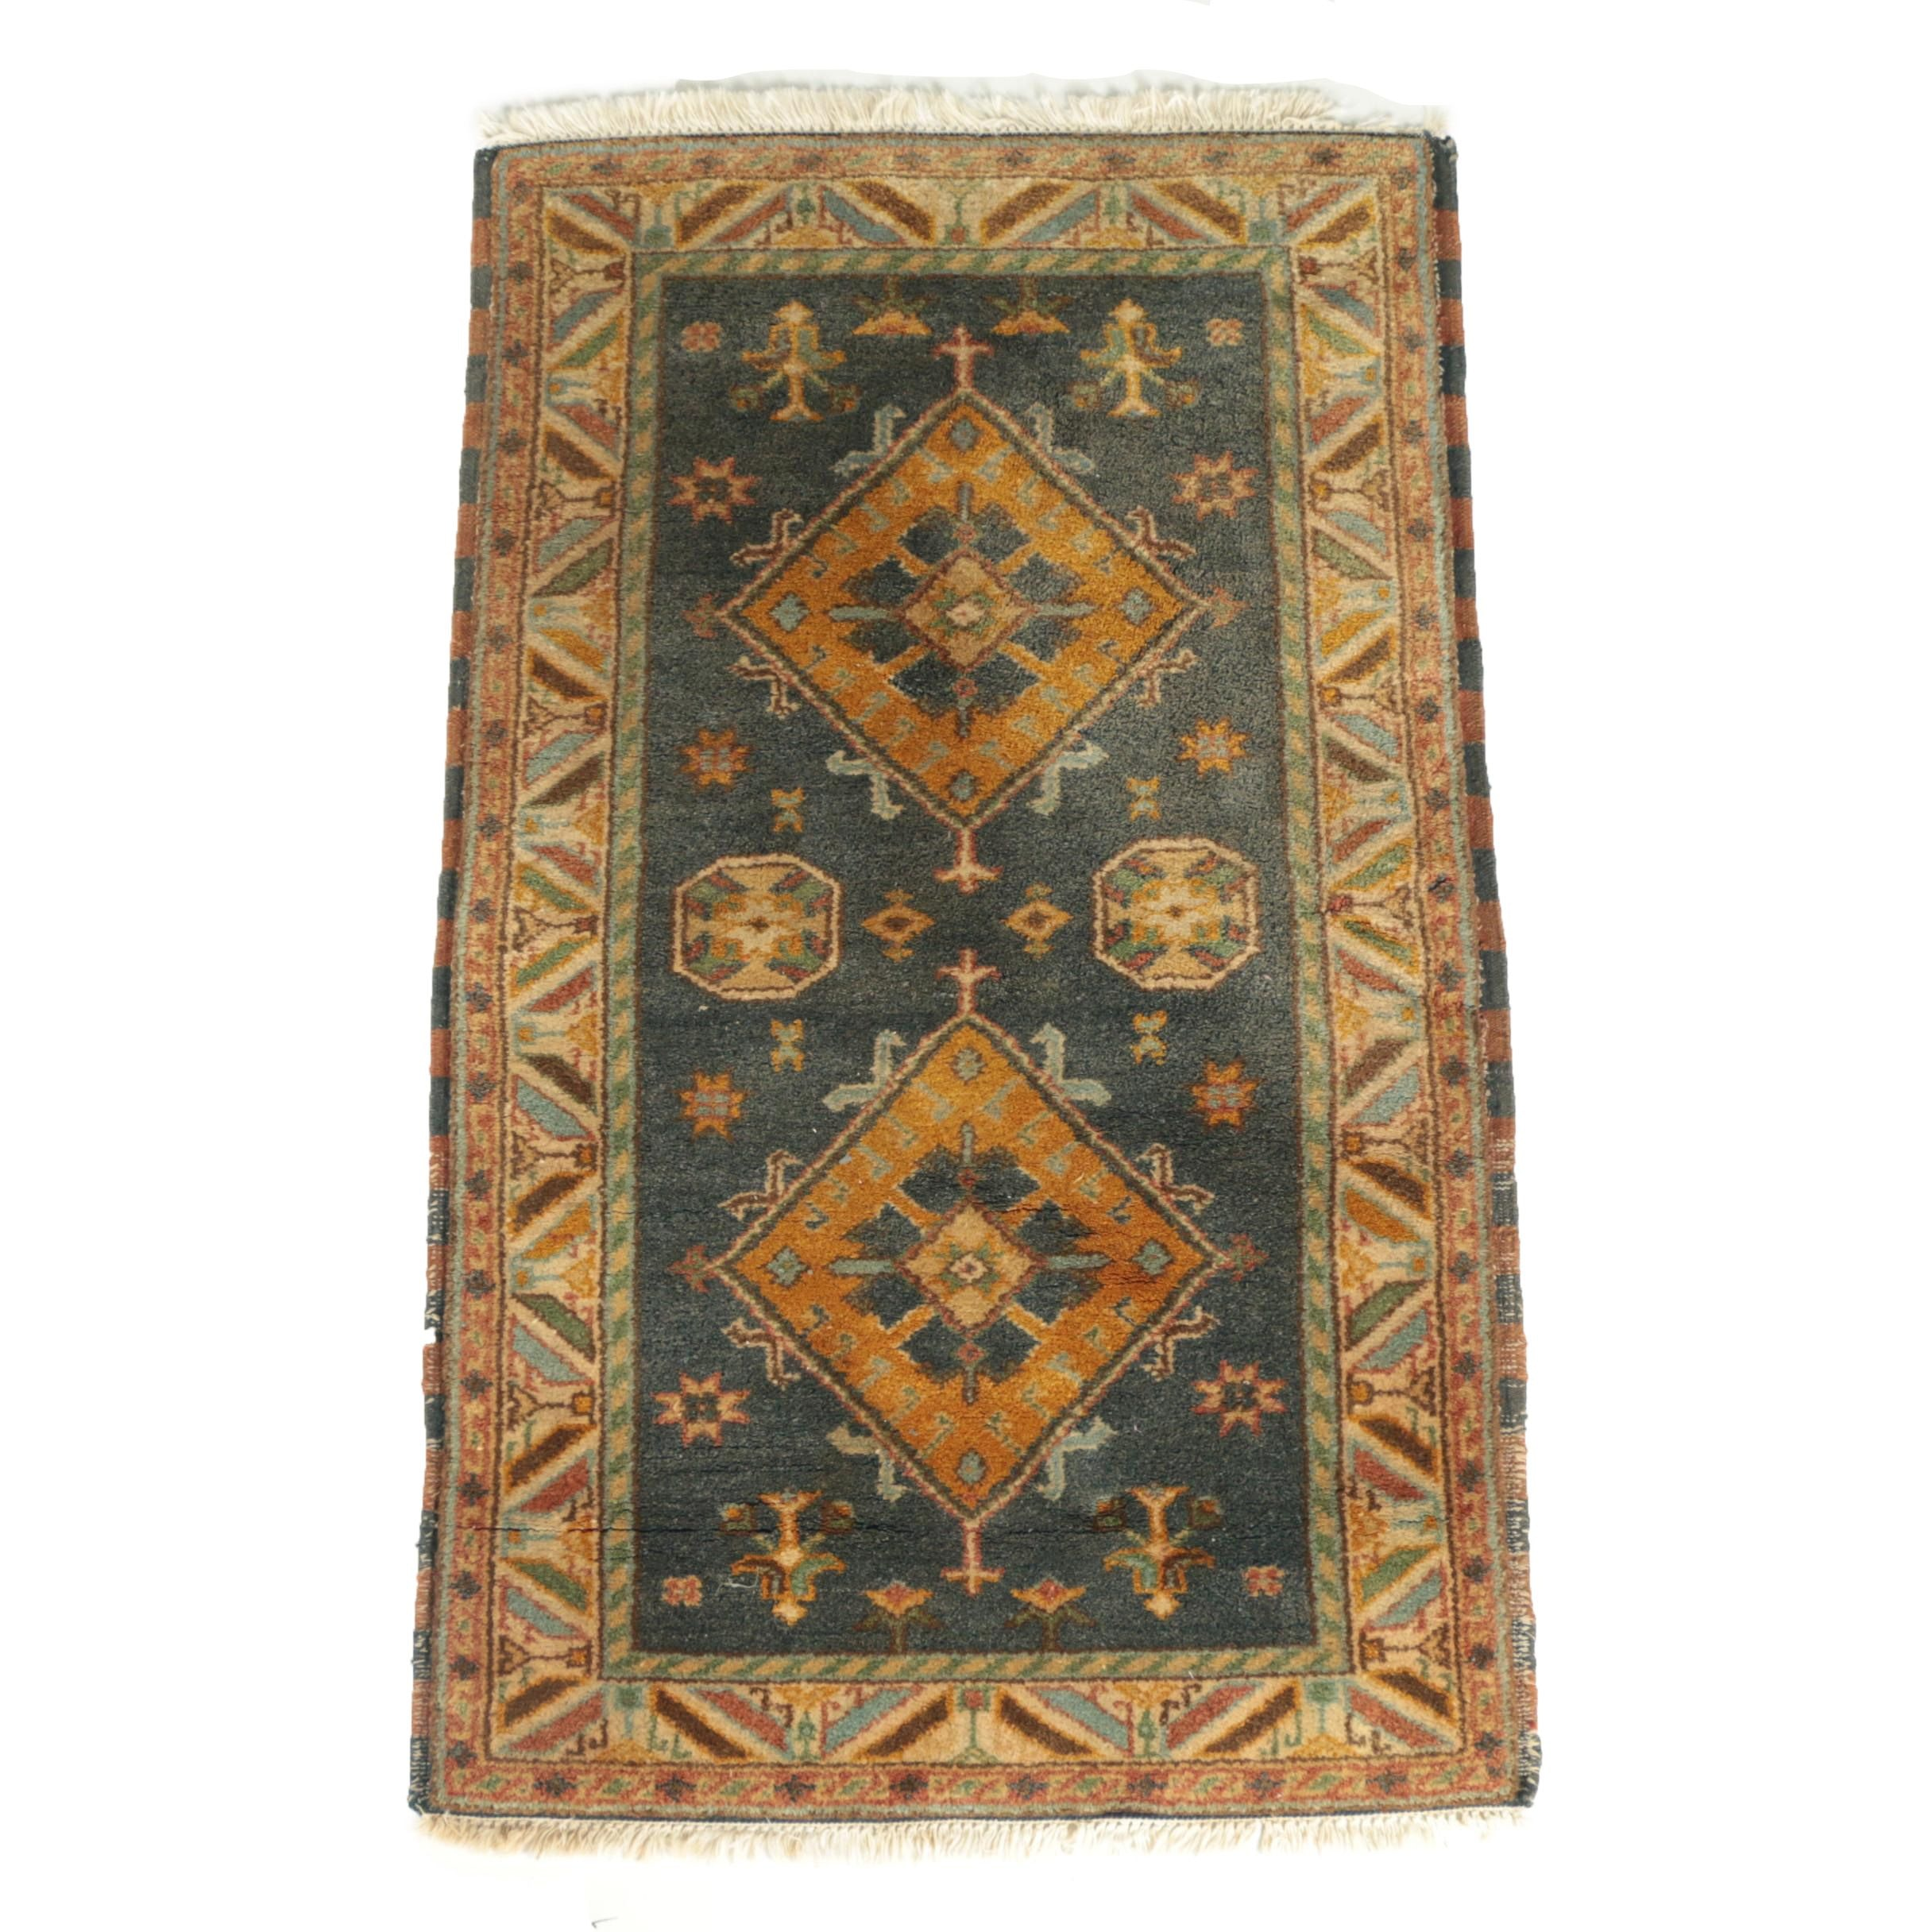 Power Loomed Caucasian-Style Wool Accent Rug